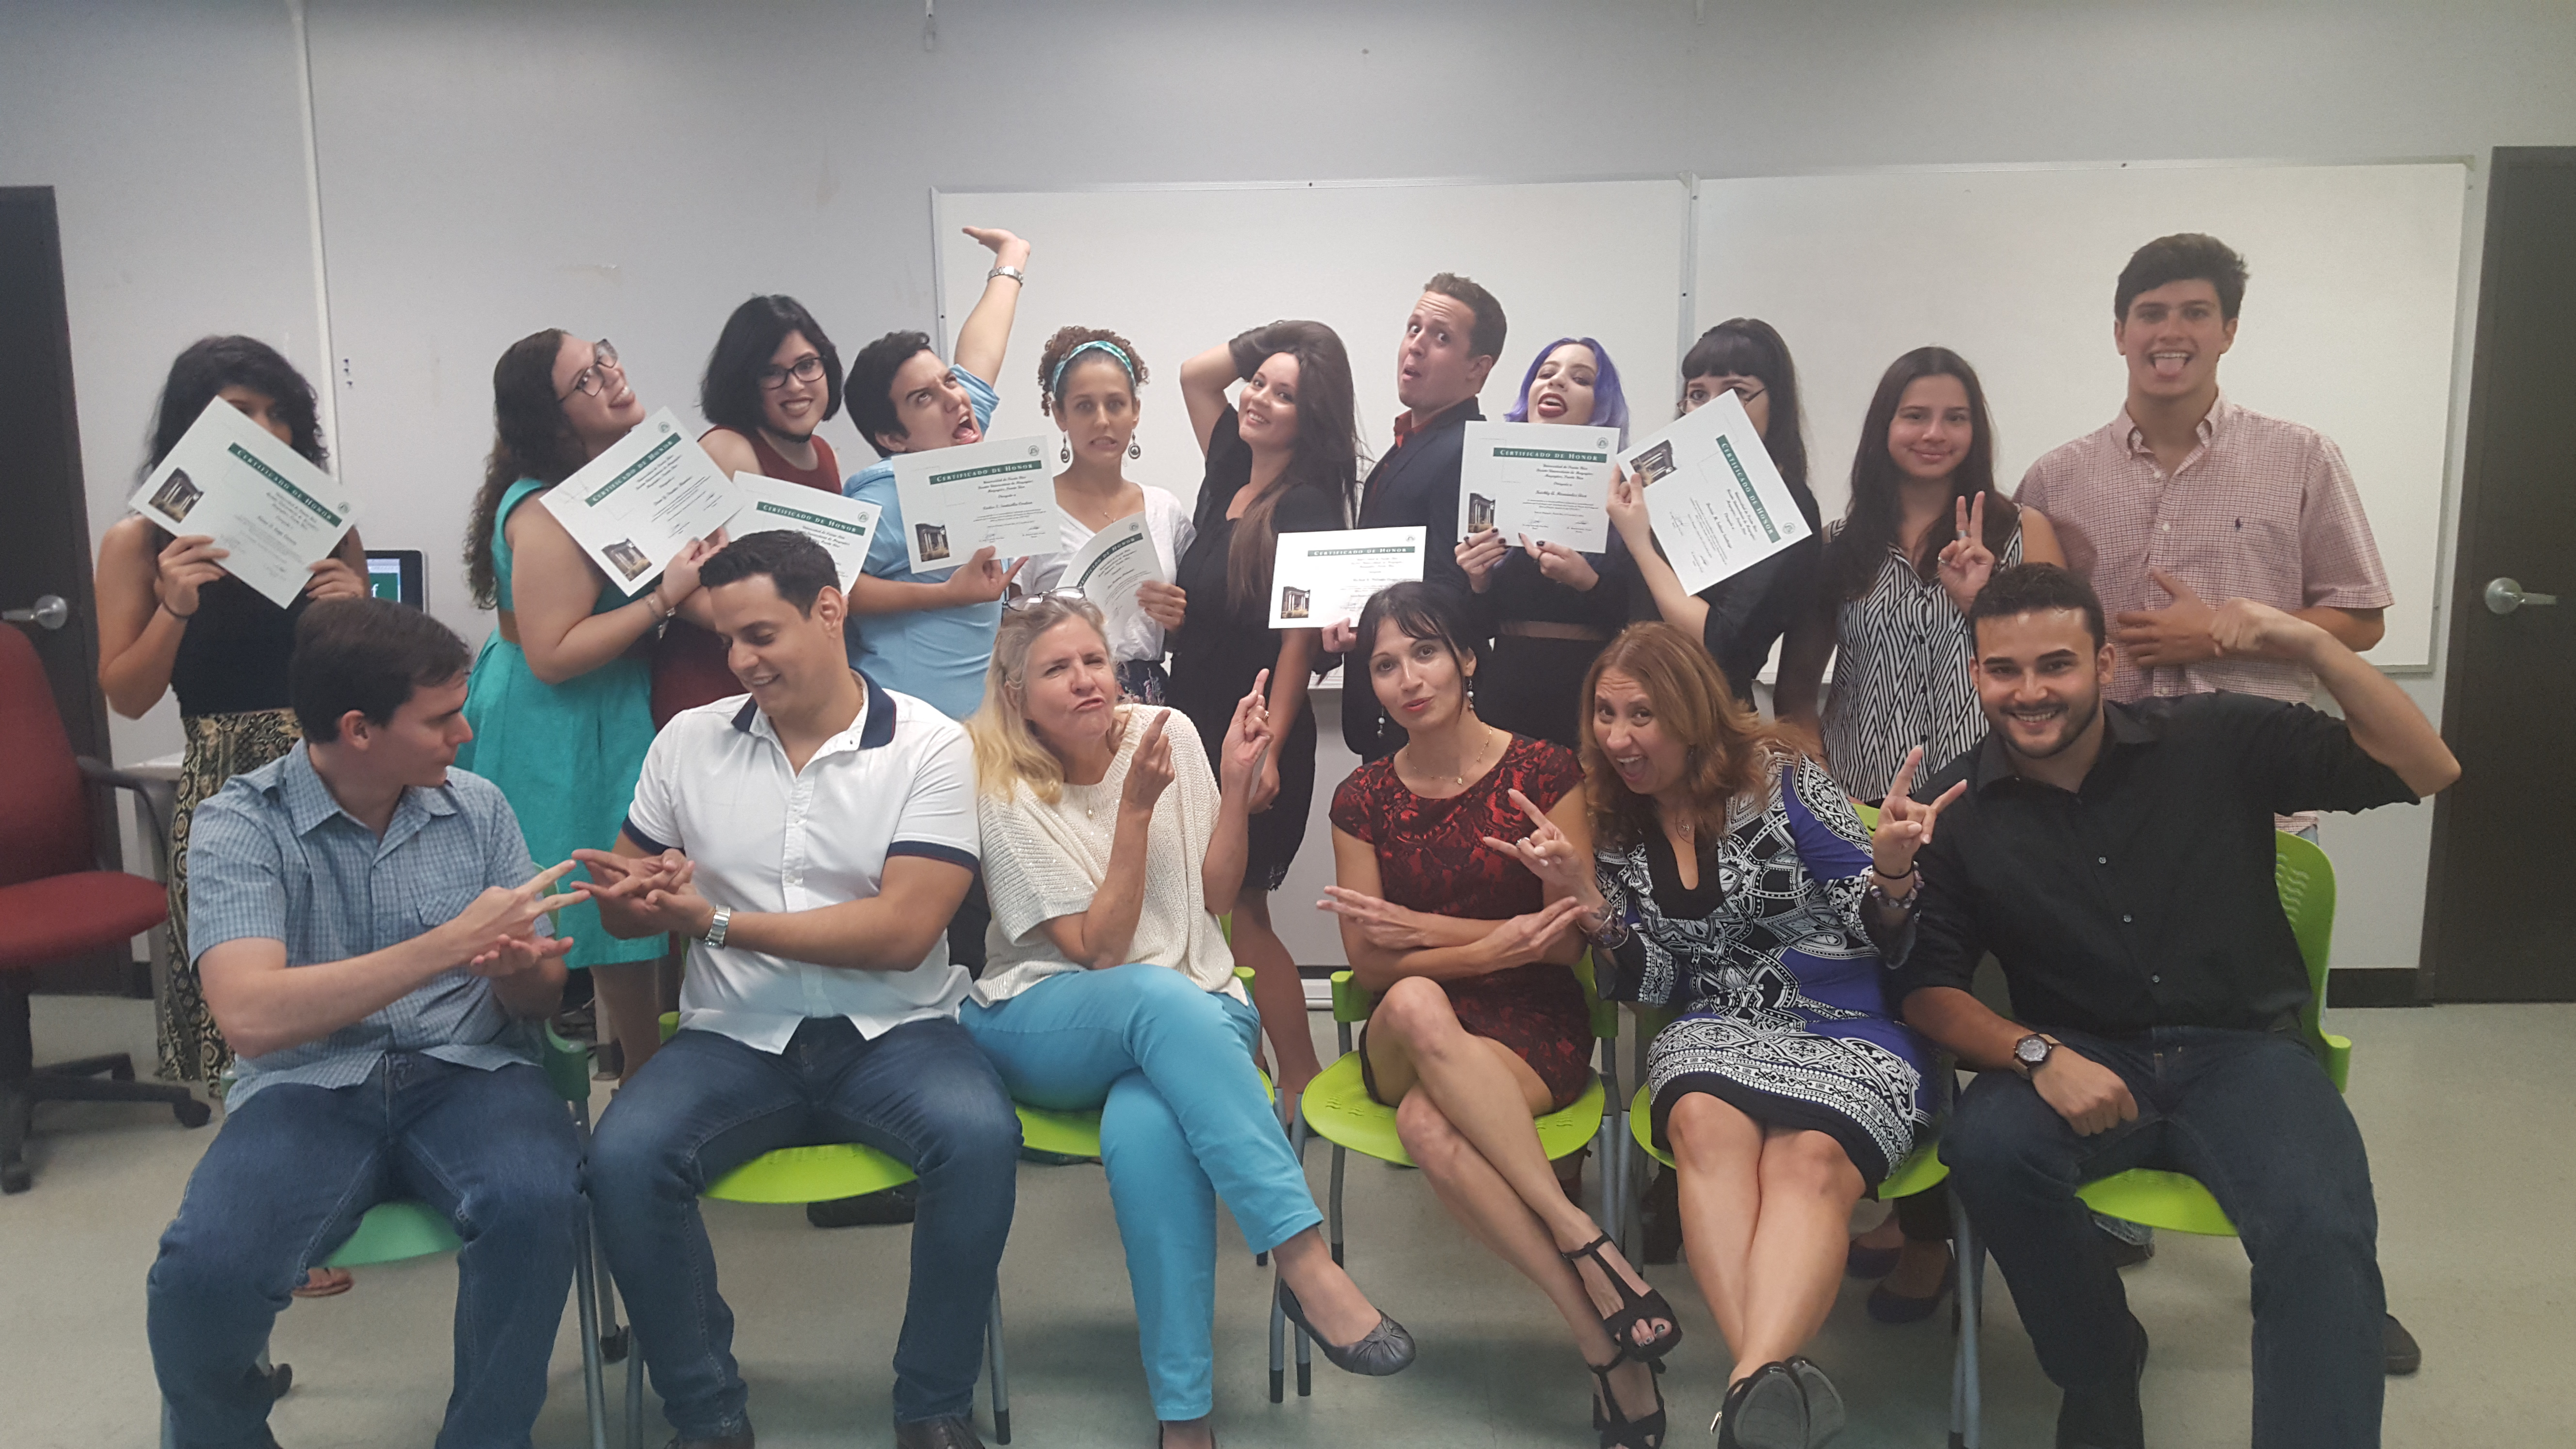 The Honor Roll Students posing for the camera while holding up their certificates (background) and the faculty members posing along with them (foreground). This time trying a funny face on.